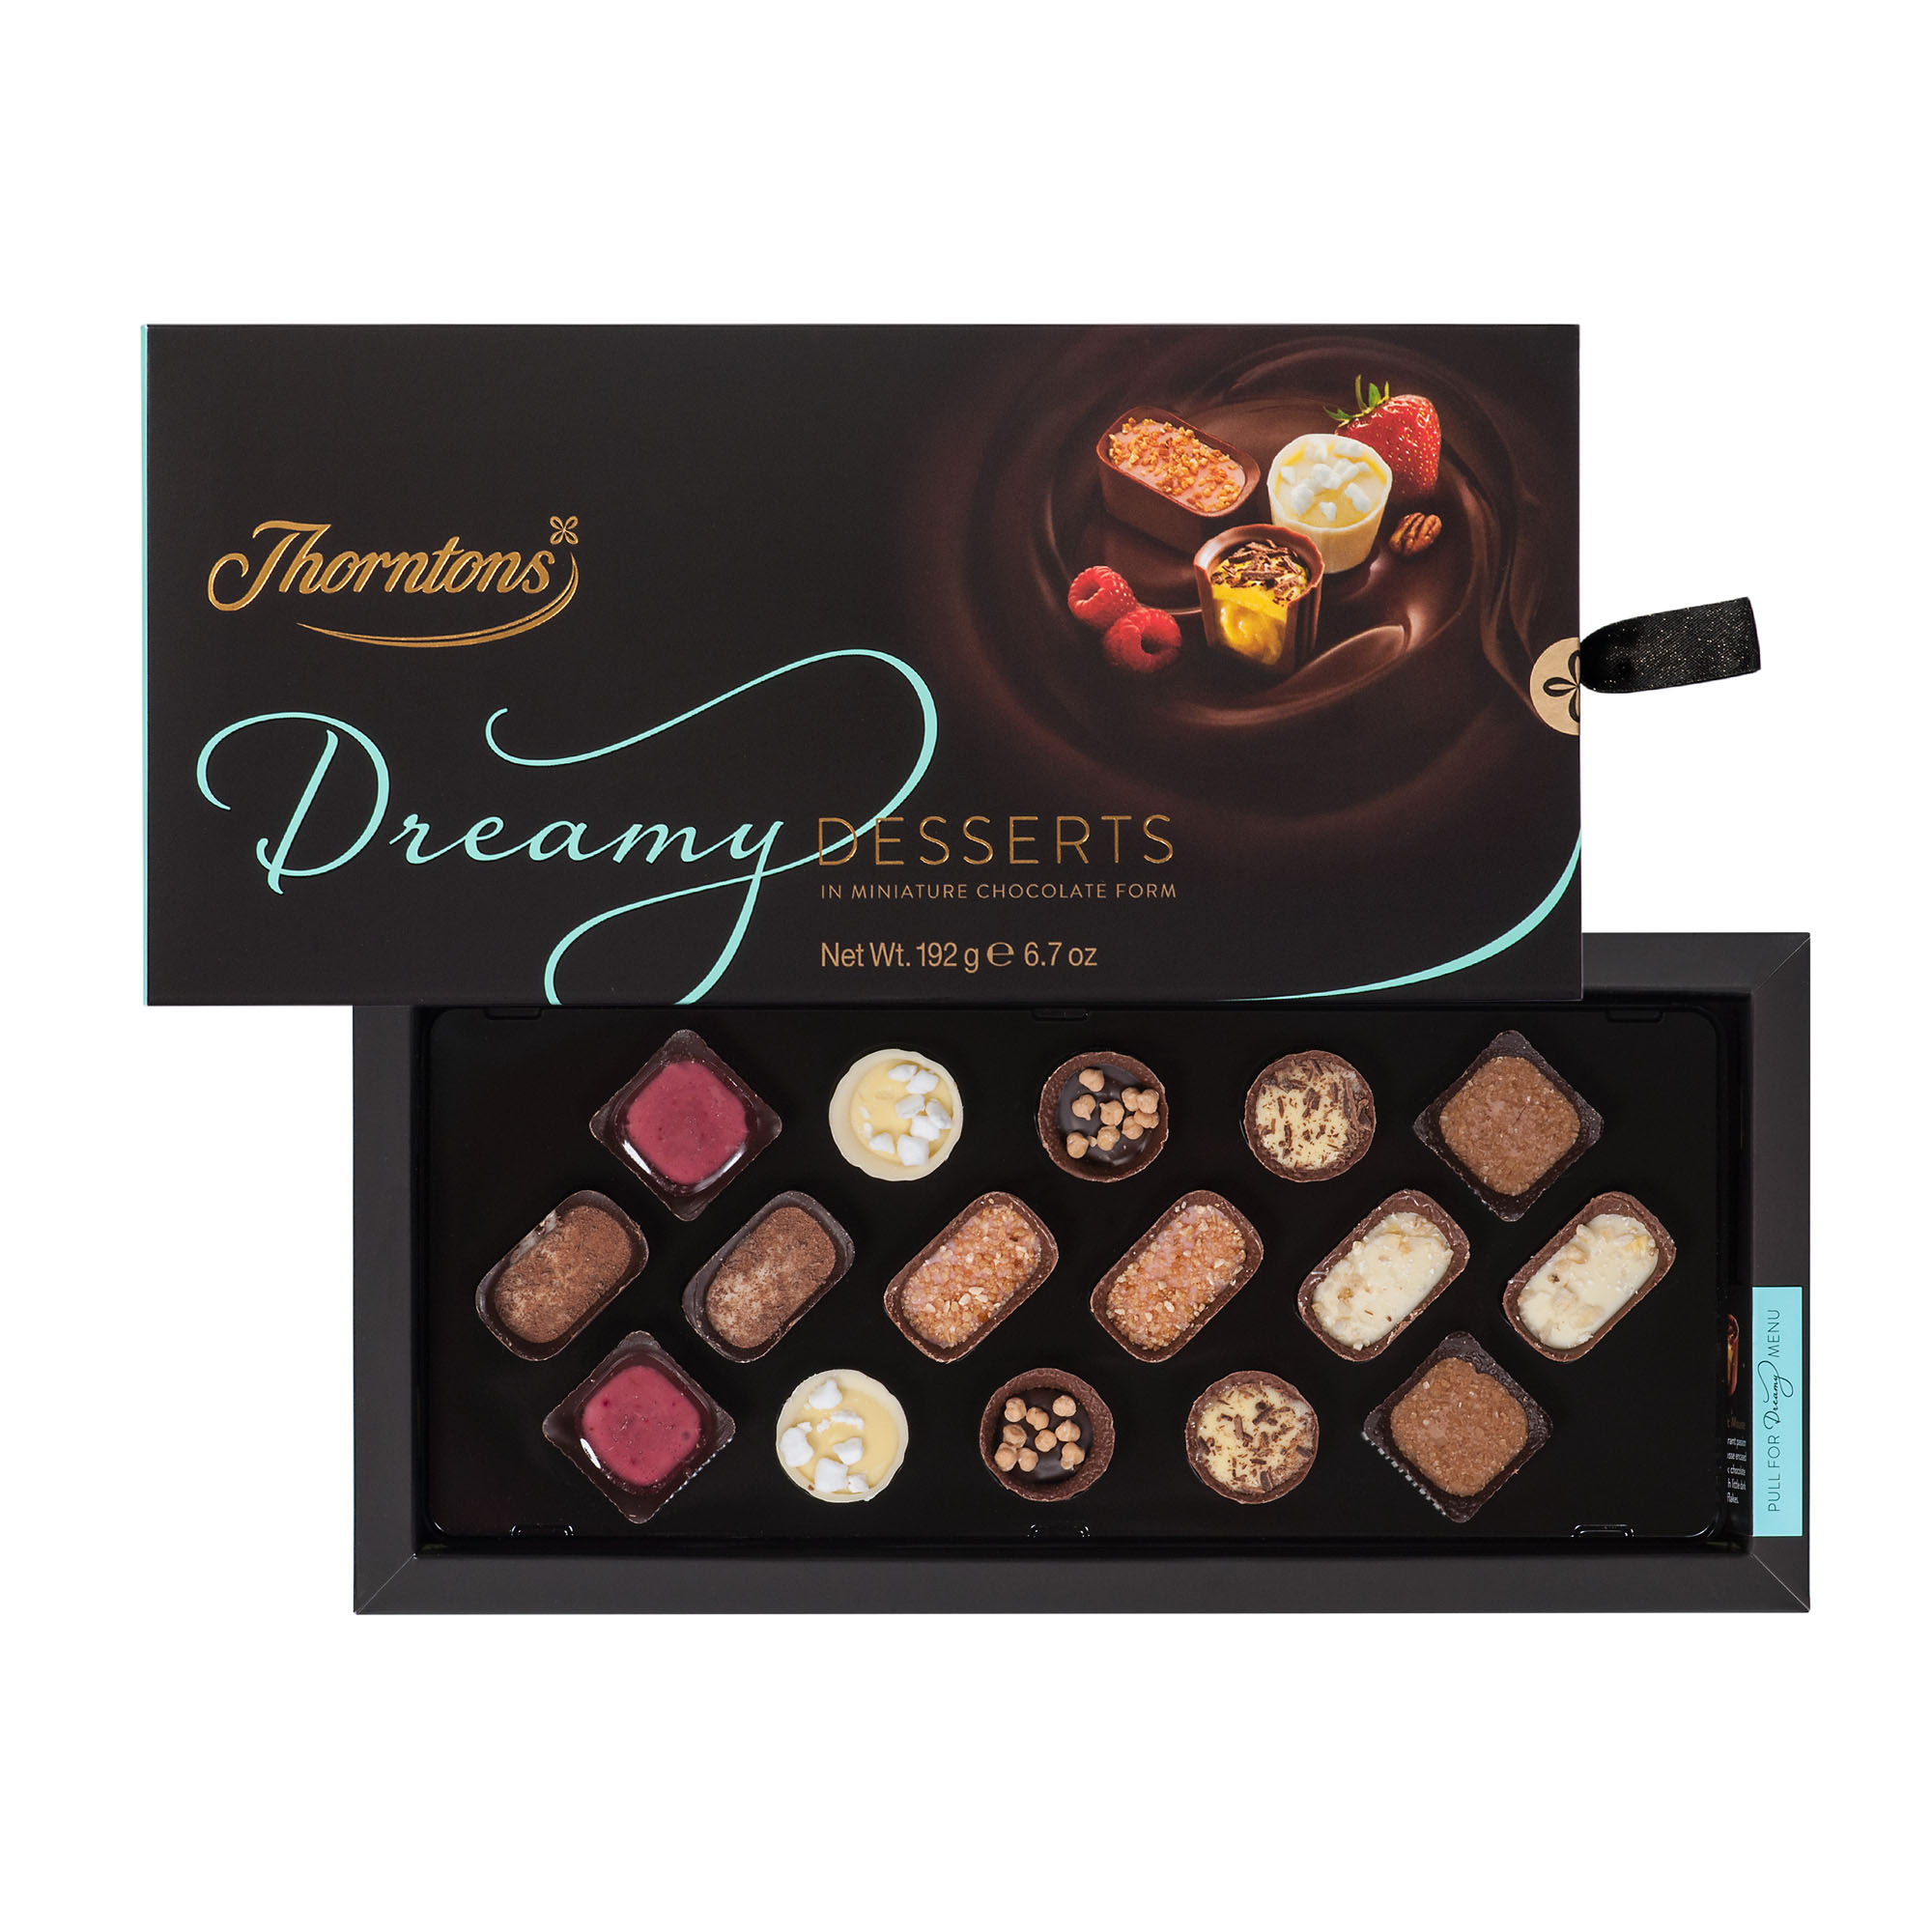 Thorntons offer a great range of delicious treats, including milk, white and dark chocolates, nutty truffles, smooth pralines and much more! Thorntons boxes make the perfect gift for the person with a sweet tooth in your life or for yourself!